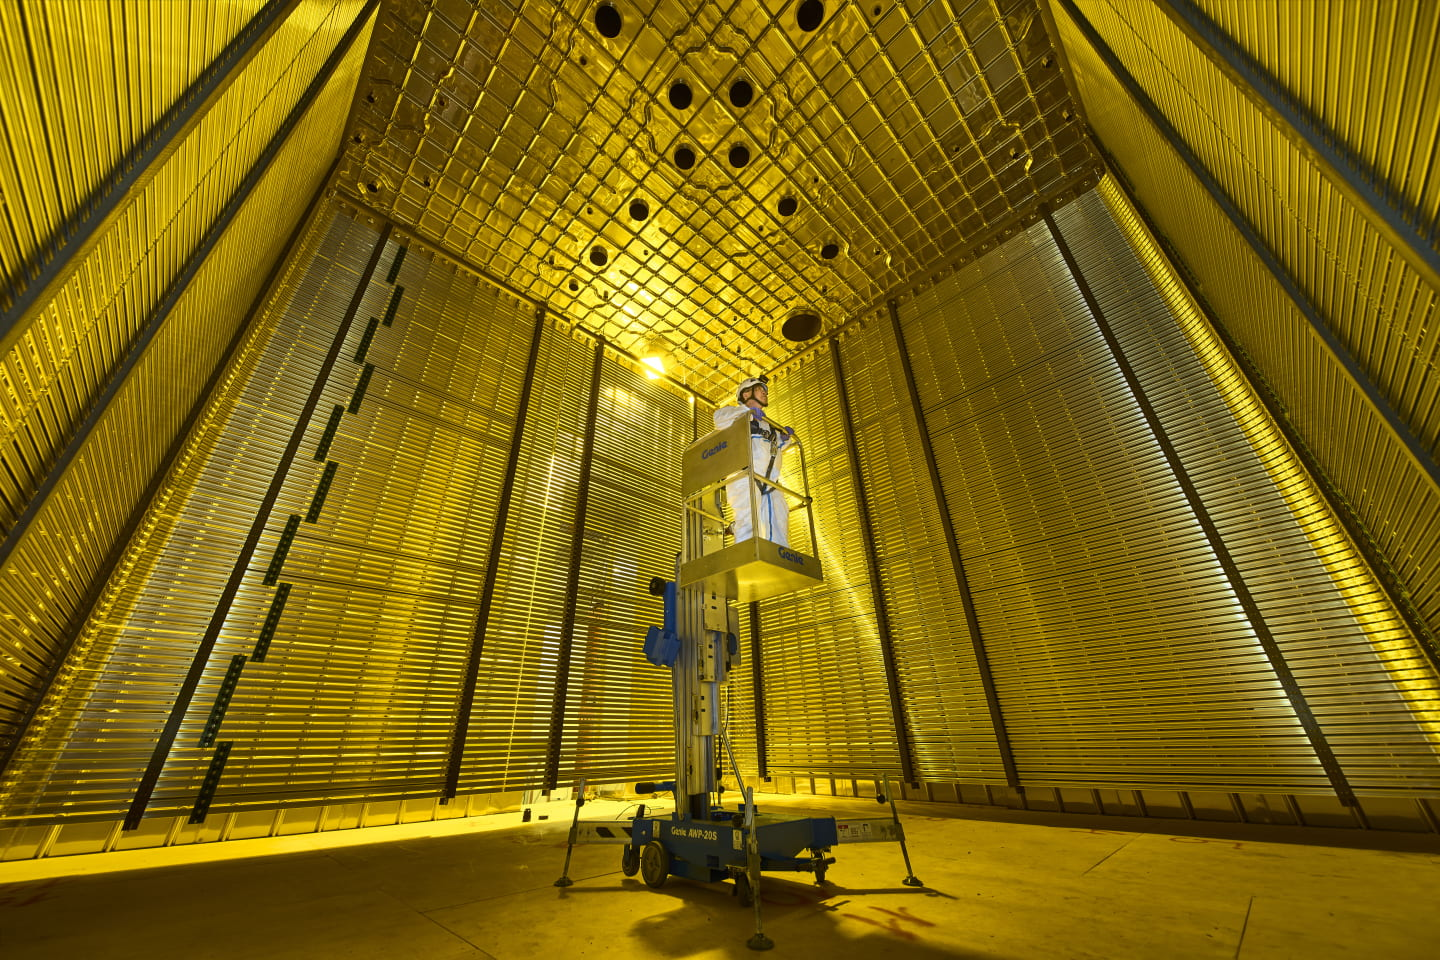 [A scientist in white clothes on a lift surveys the inside of a gold-coated and box-shaped detector for neutrinos.]